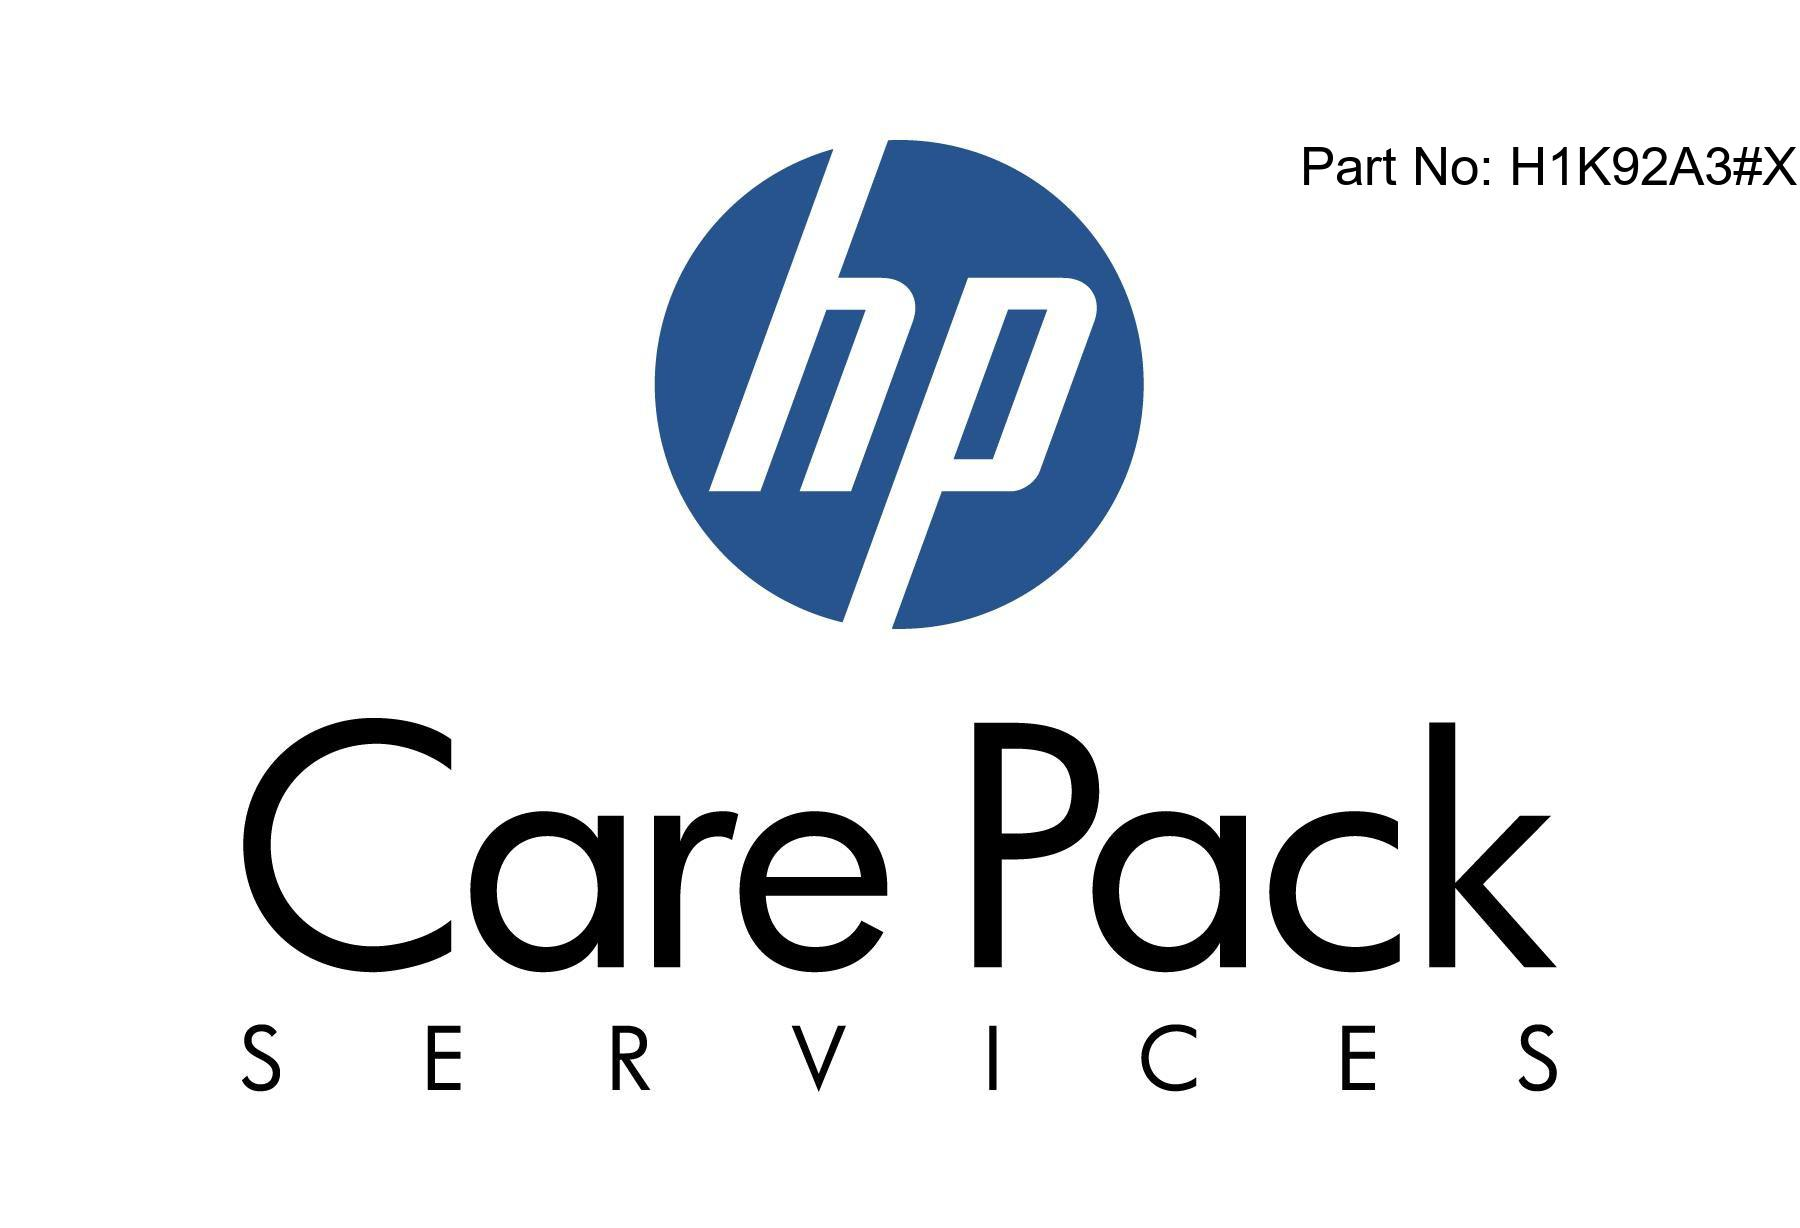 Proactive Care 24x7 Service - Extended service agreement - parts and labor - 3 years - on-site - 24x7 - response time: 4 h - for P/N: P03684-291 P03685-291 P03685-375 P03686-291 P03686-375 P03687-425 P03687-S01